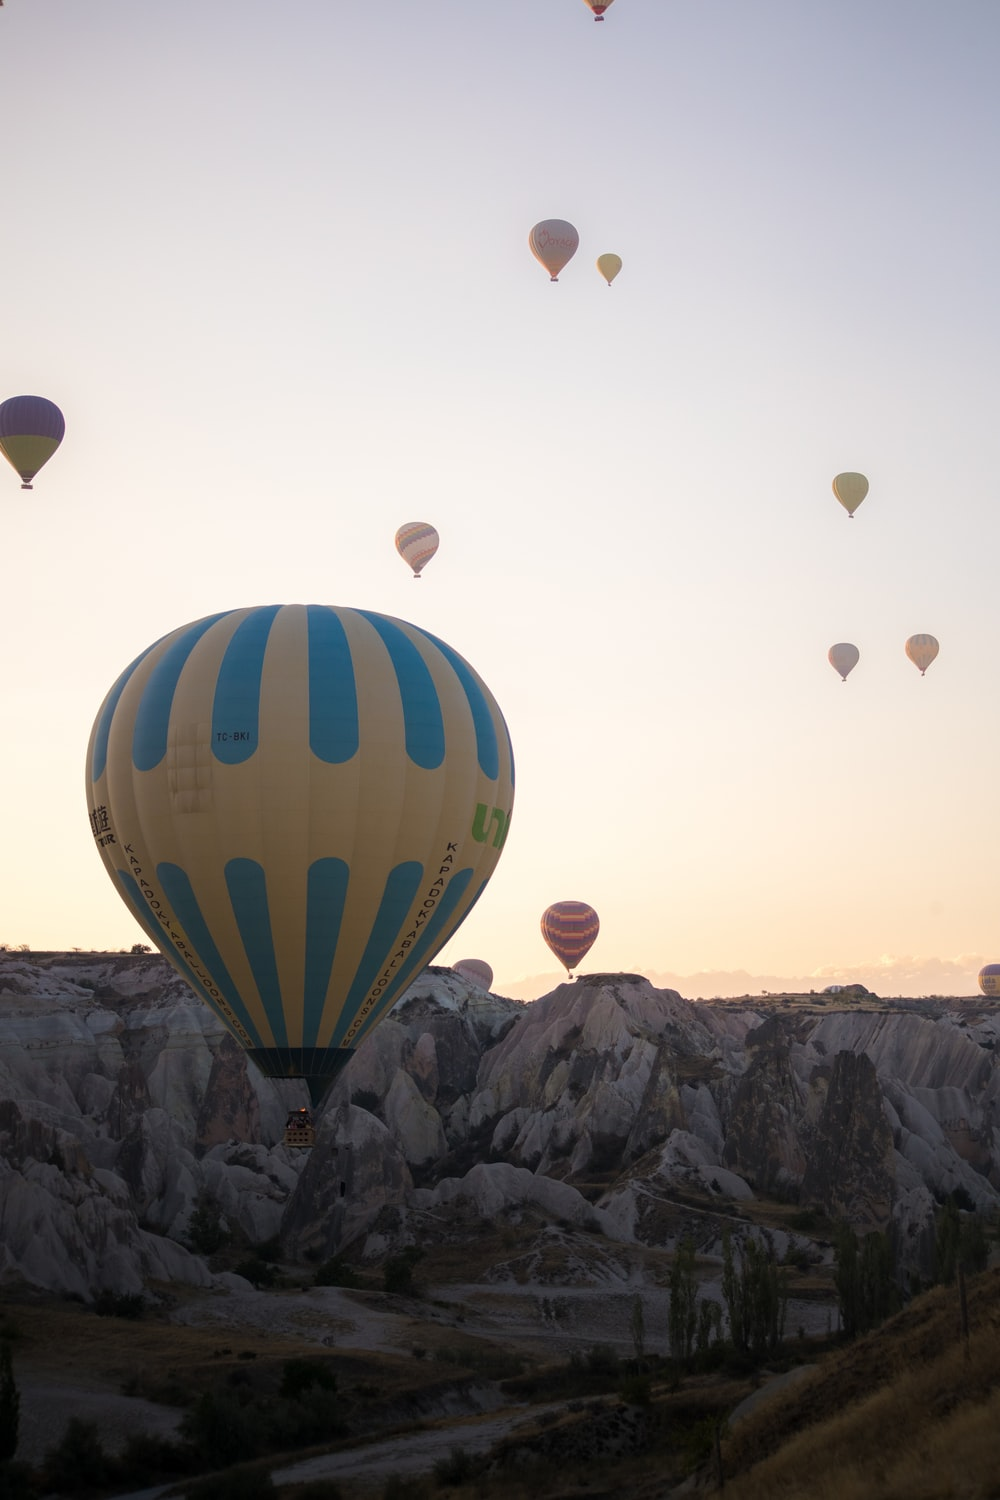 hot air balloons on the sky during daytime